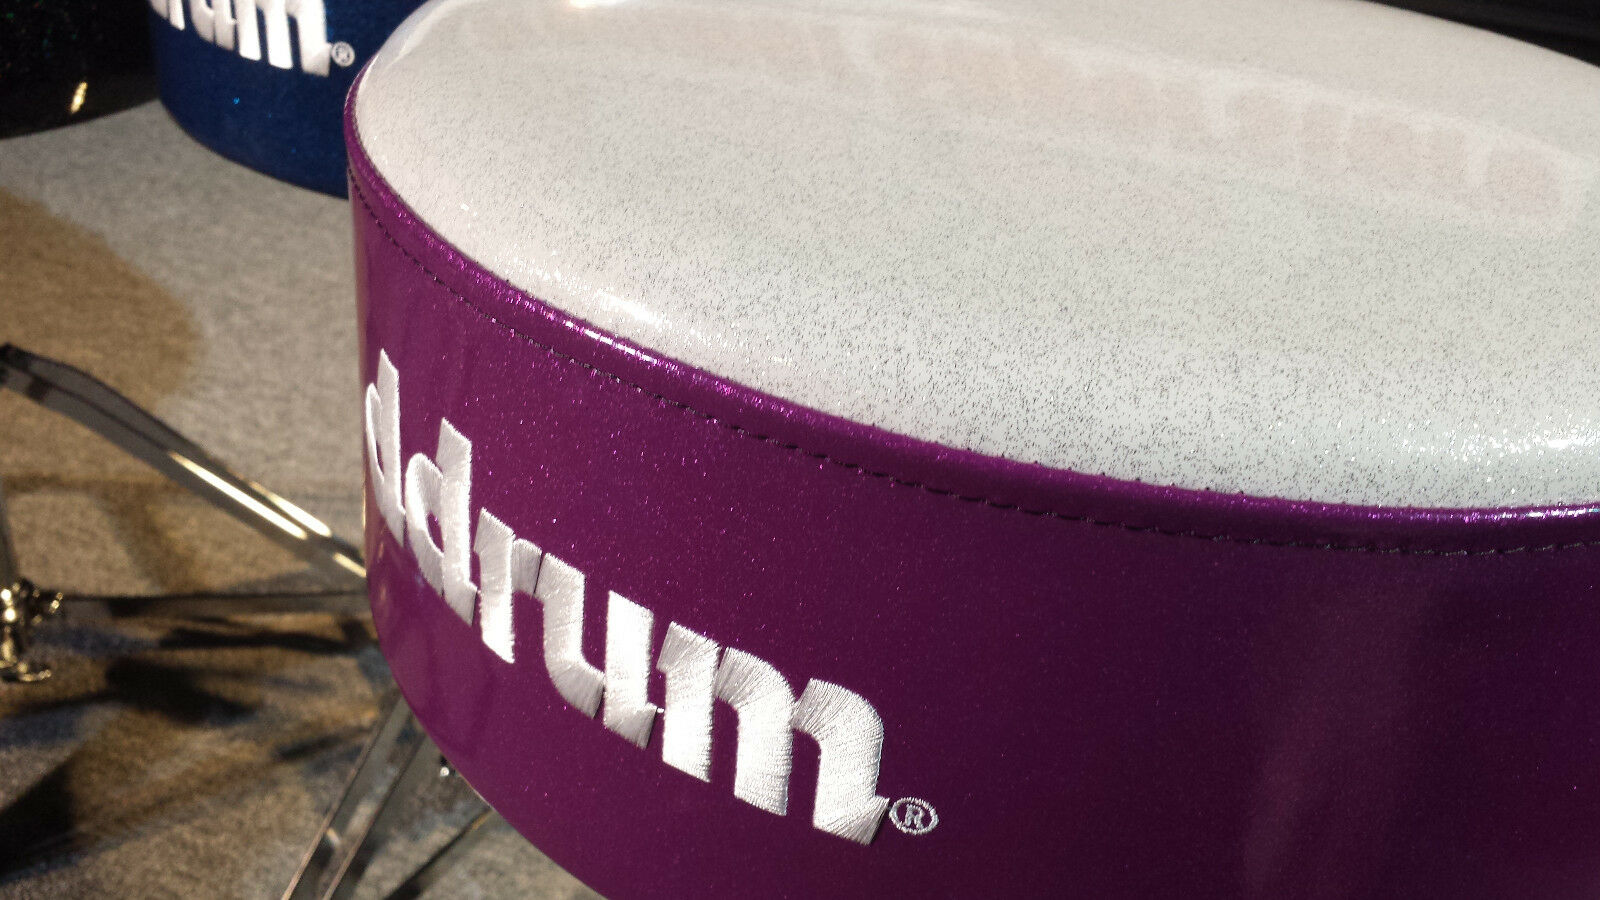 DDrum Drum Throne Mercury FAT  WhiteTop w  Purple Sparkle Sides Seat    MFAT WP